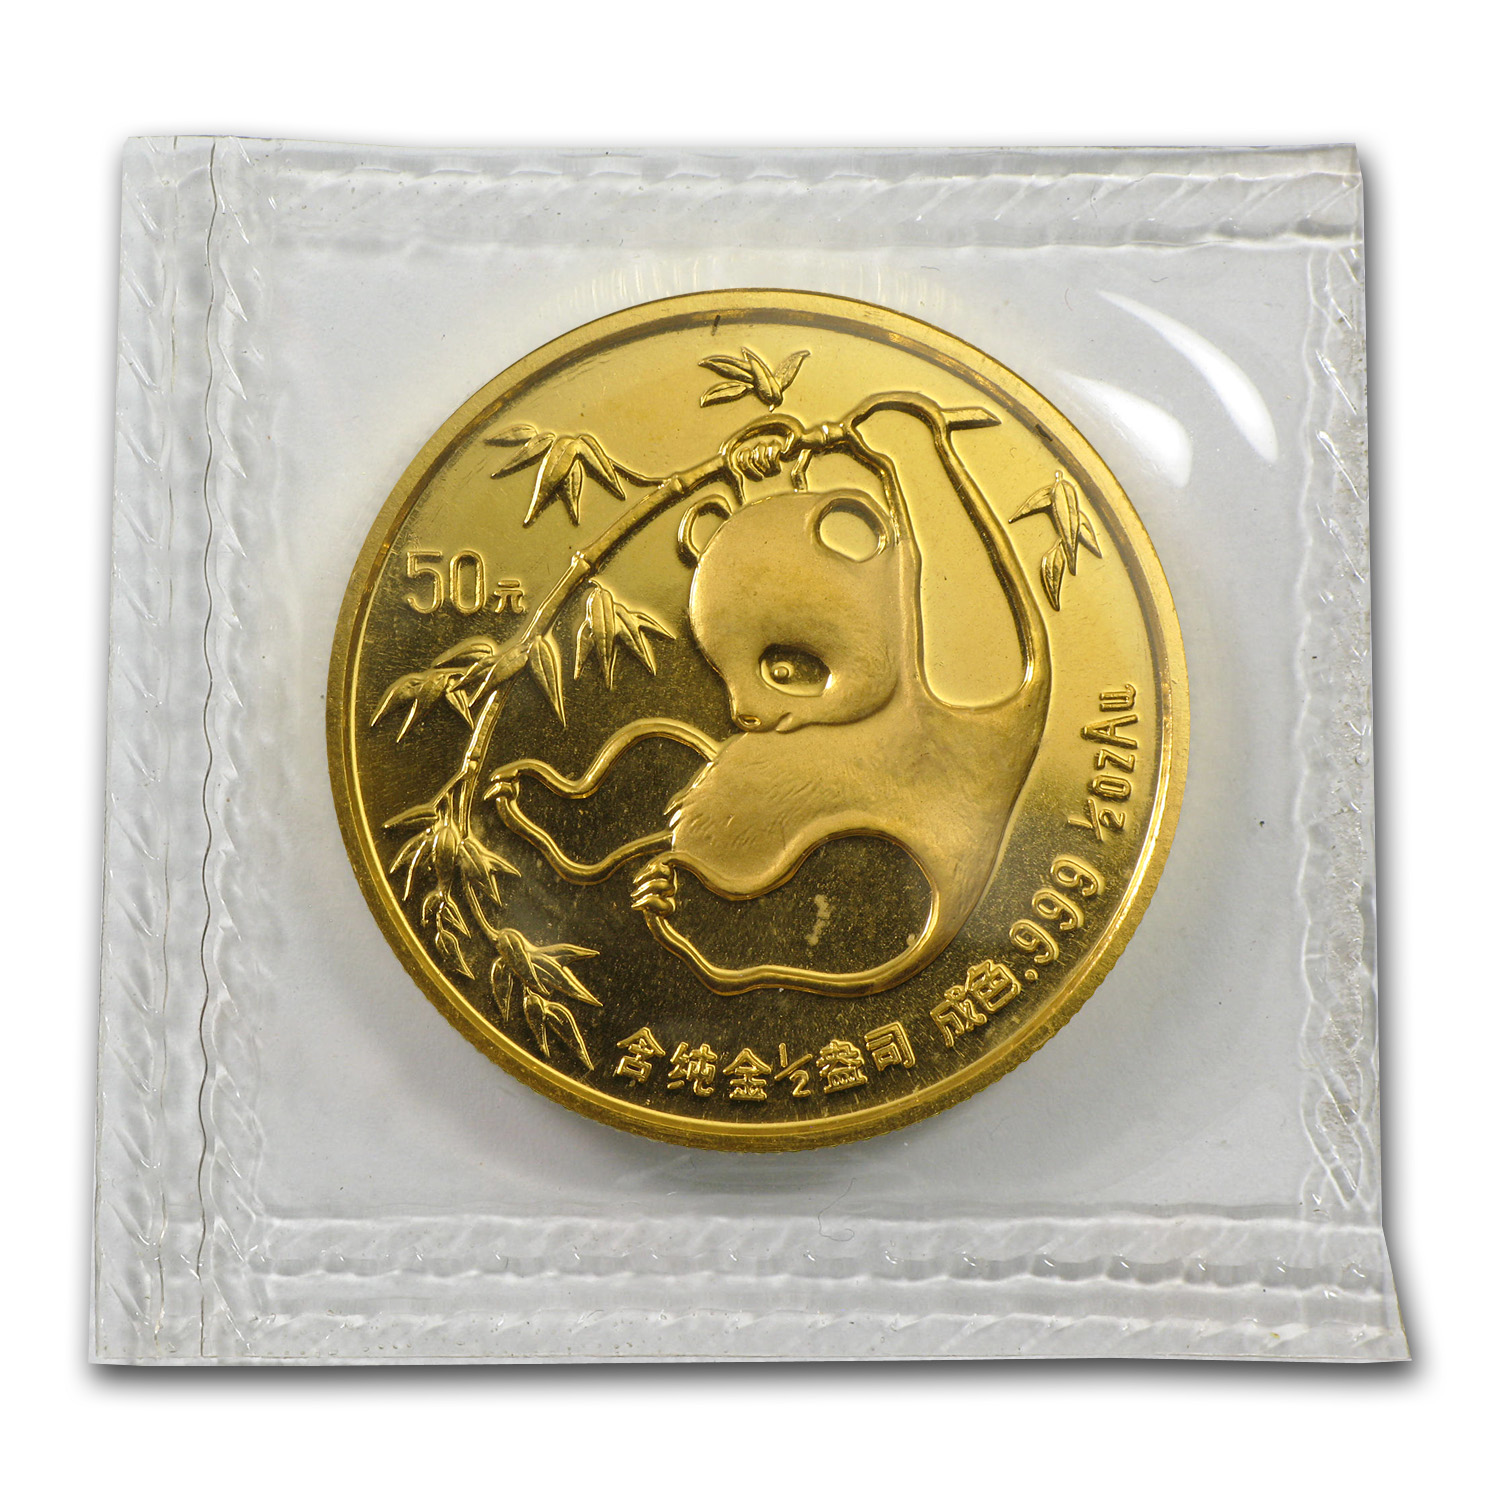 1985 1/2 oz Gold Chinese Panda BU (Sealed)